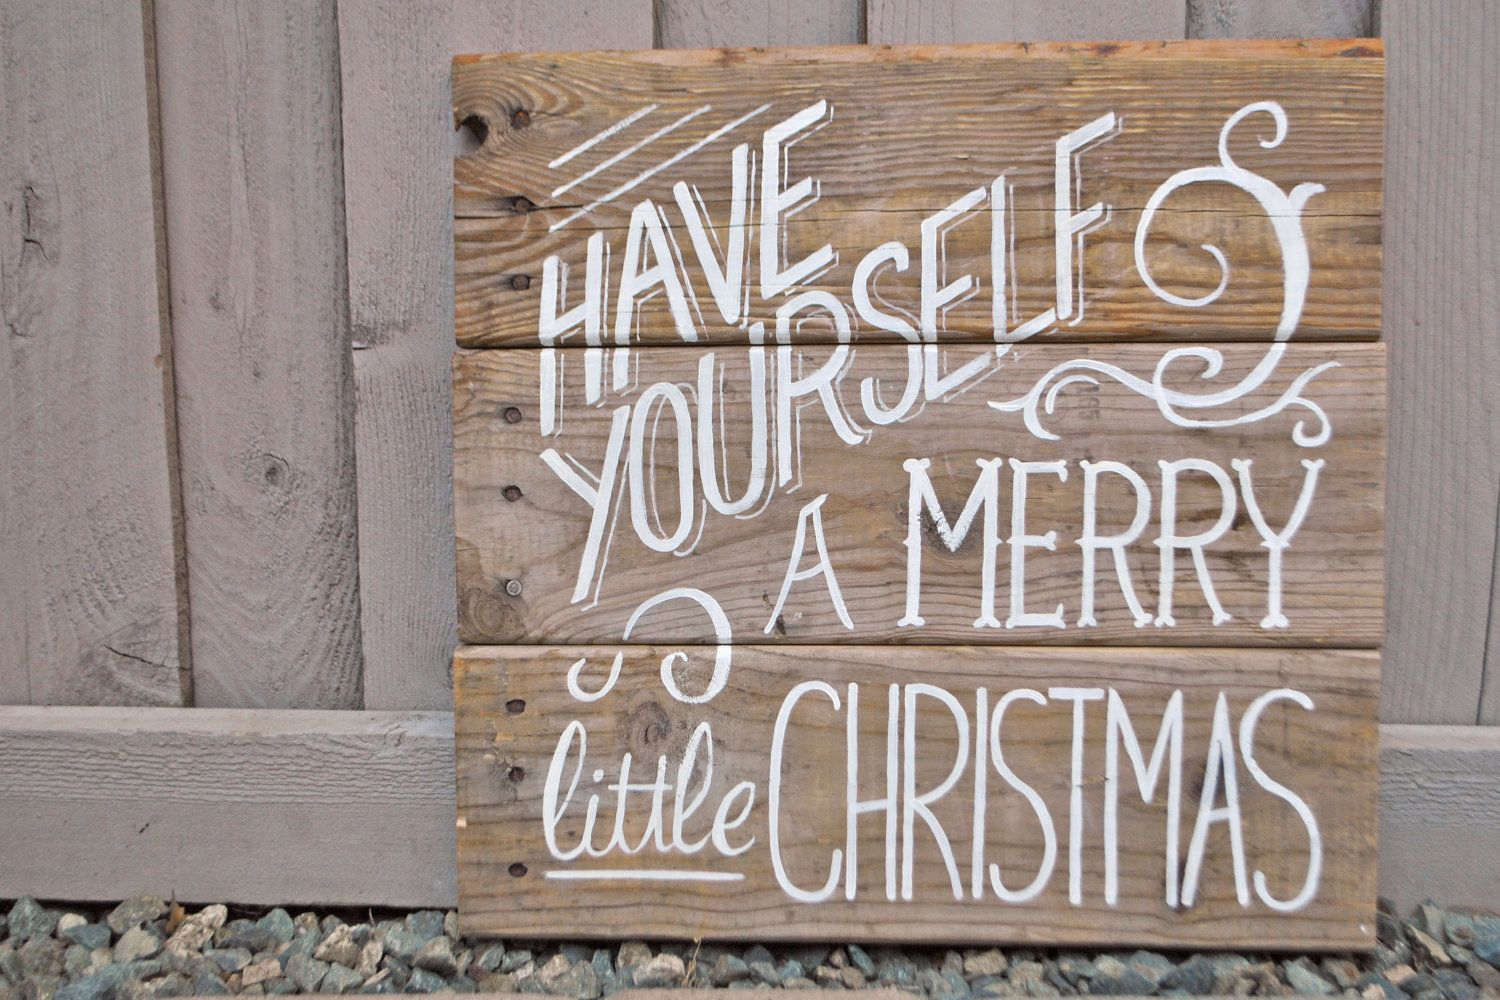 Have yourself a merry little christmas vintage poster style wood